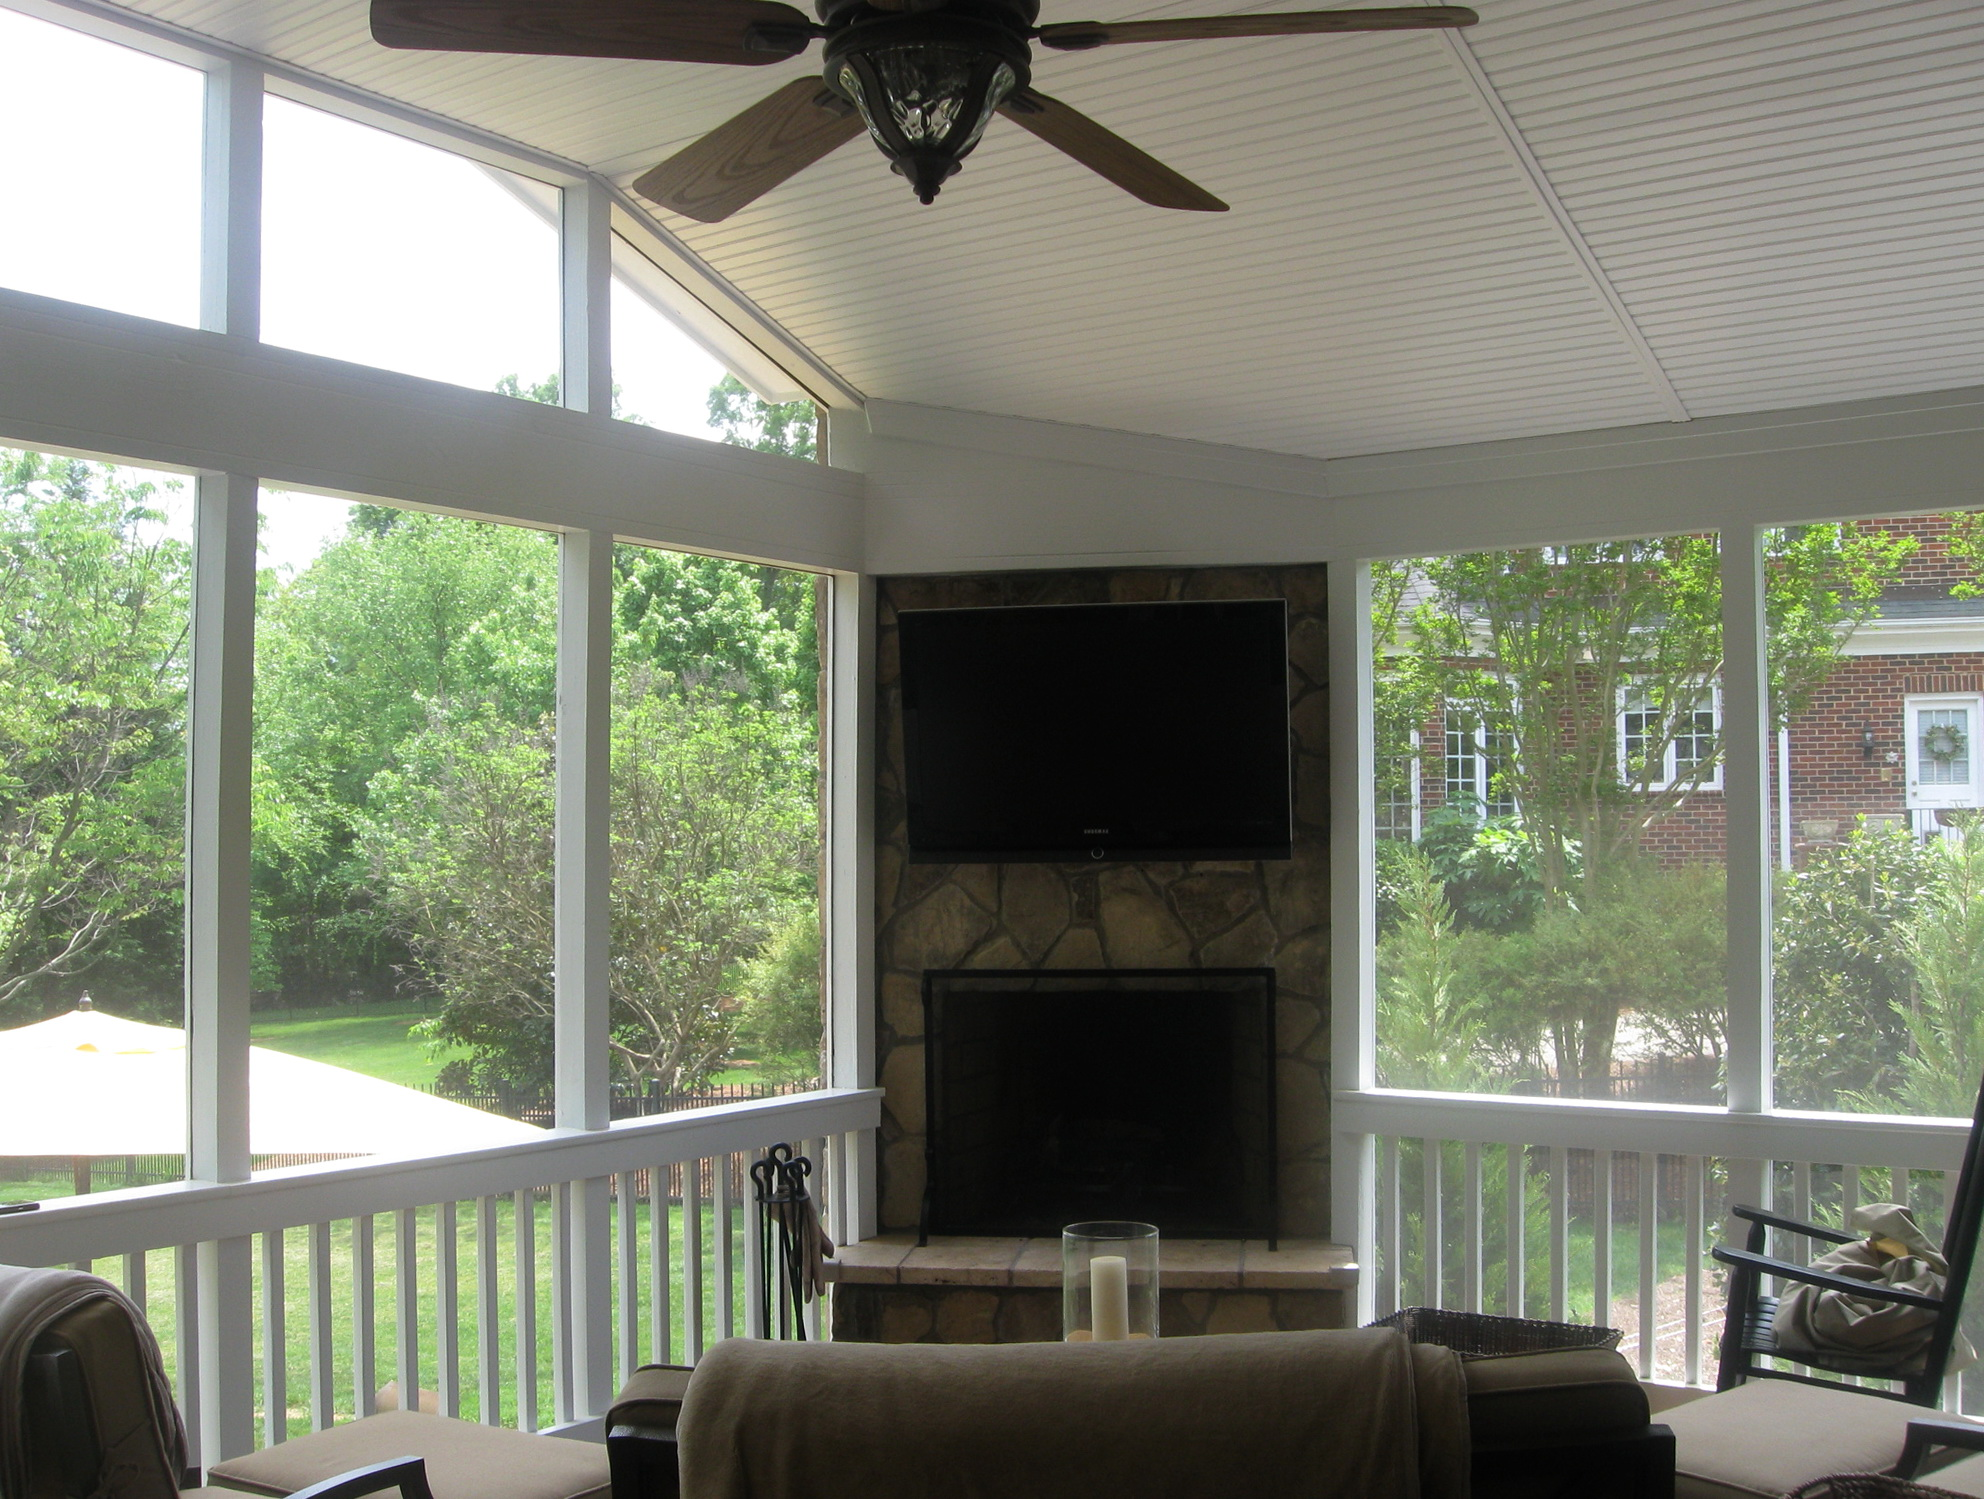 Permalink to Screened In Porch With Fireplace Cost